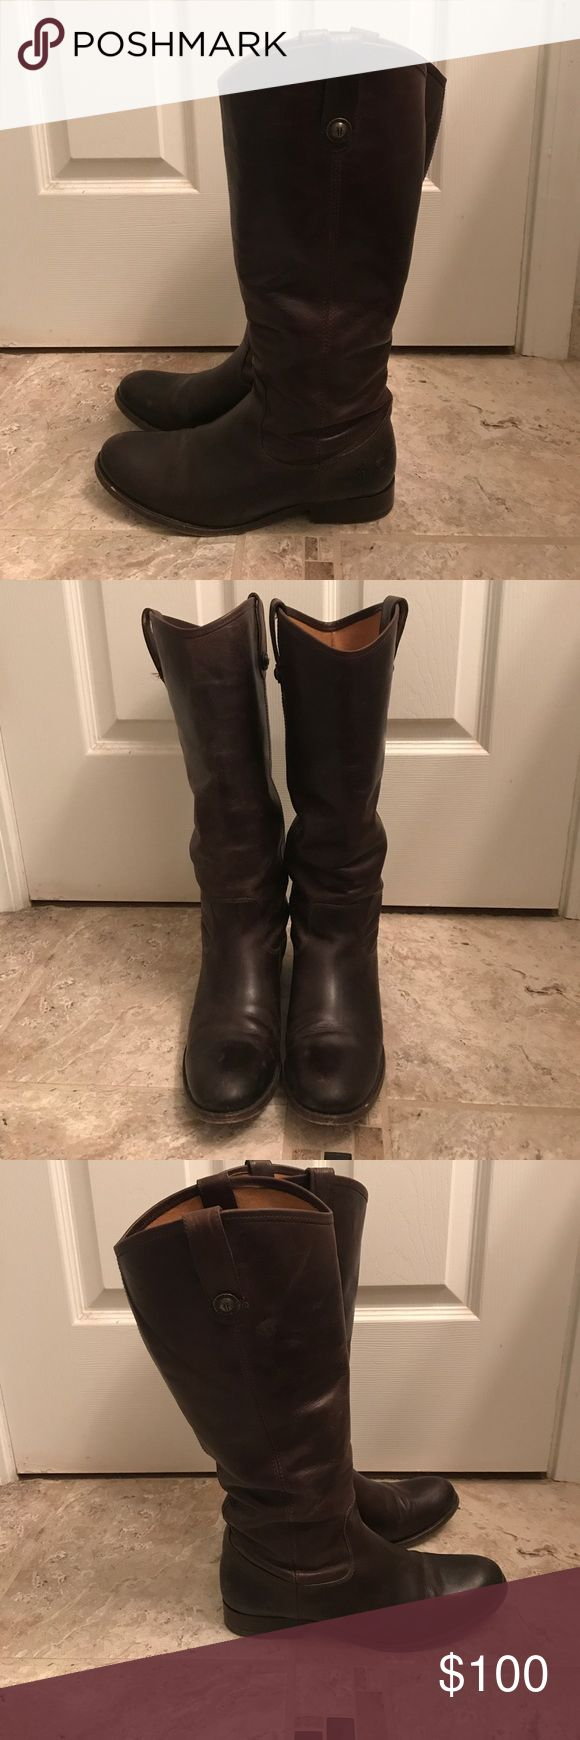 Frye Melissa Boots in Chestnut Frye Melissa boots in dark brown. Good condition with minor spots that need buffing Frye Shoes Heeled Boots